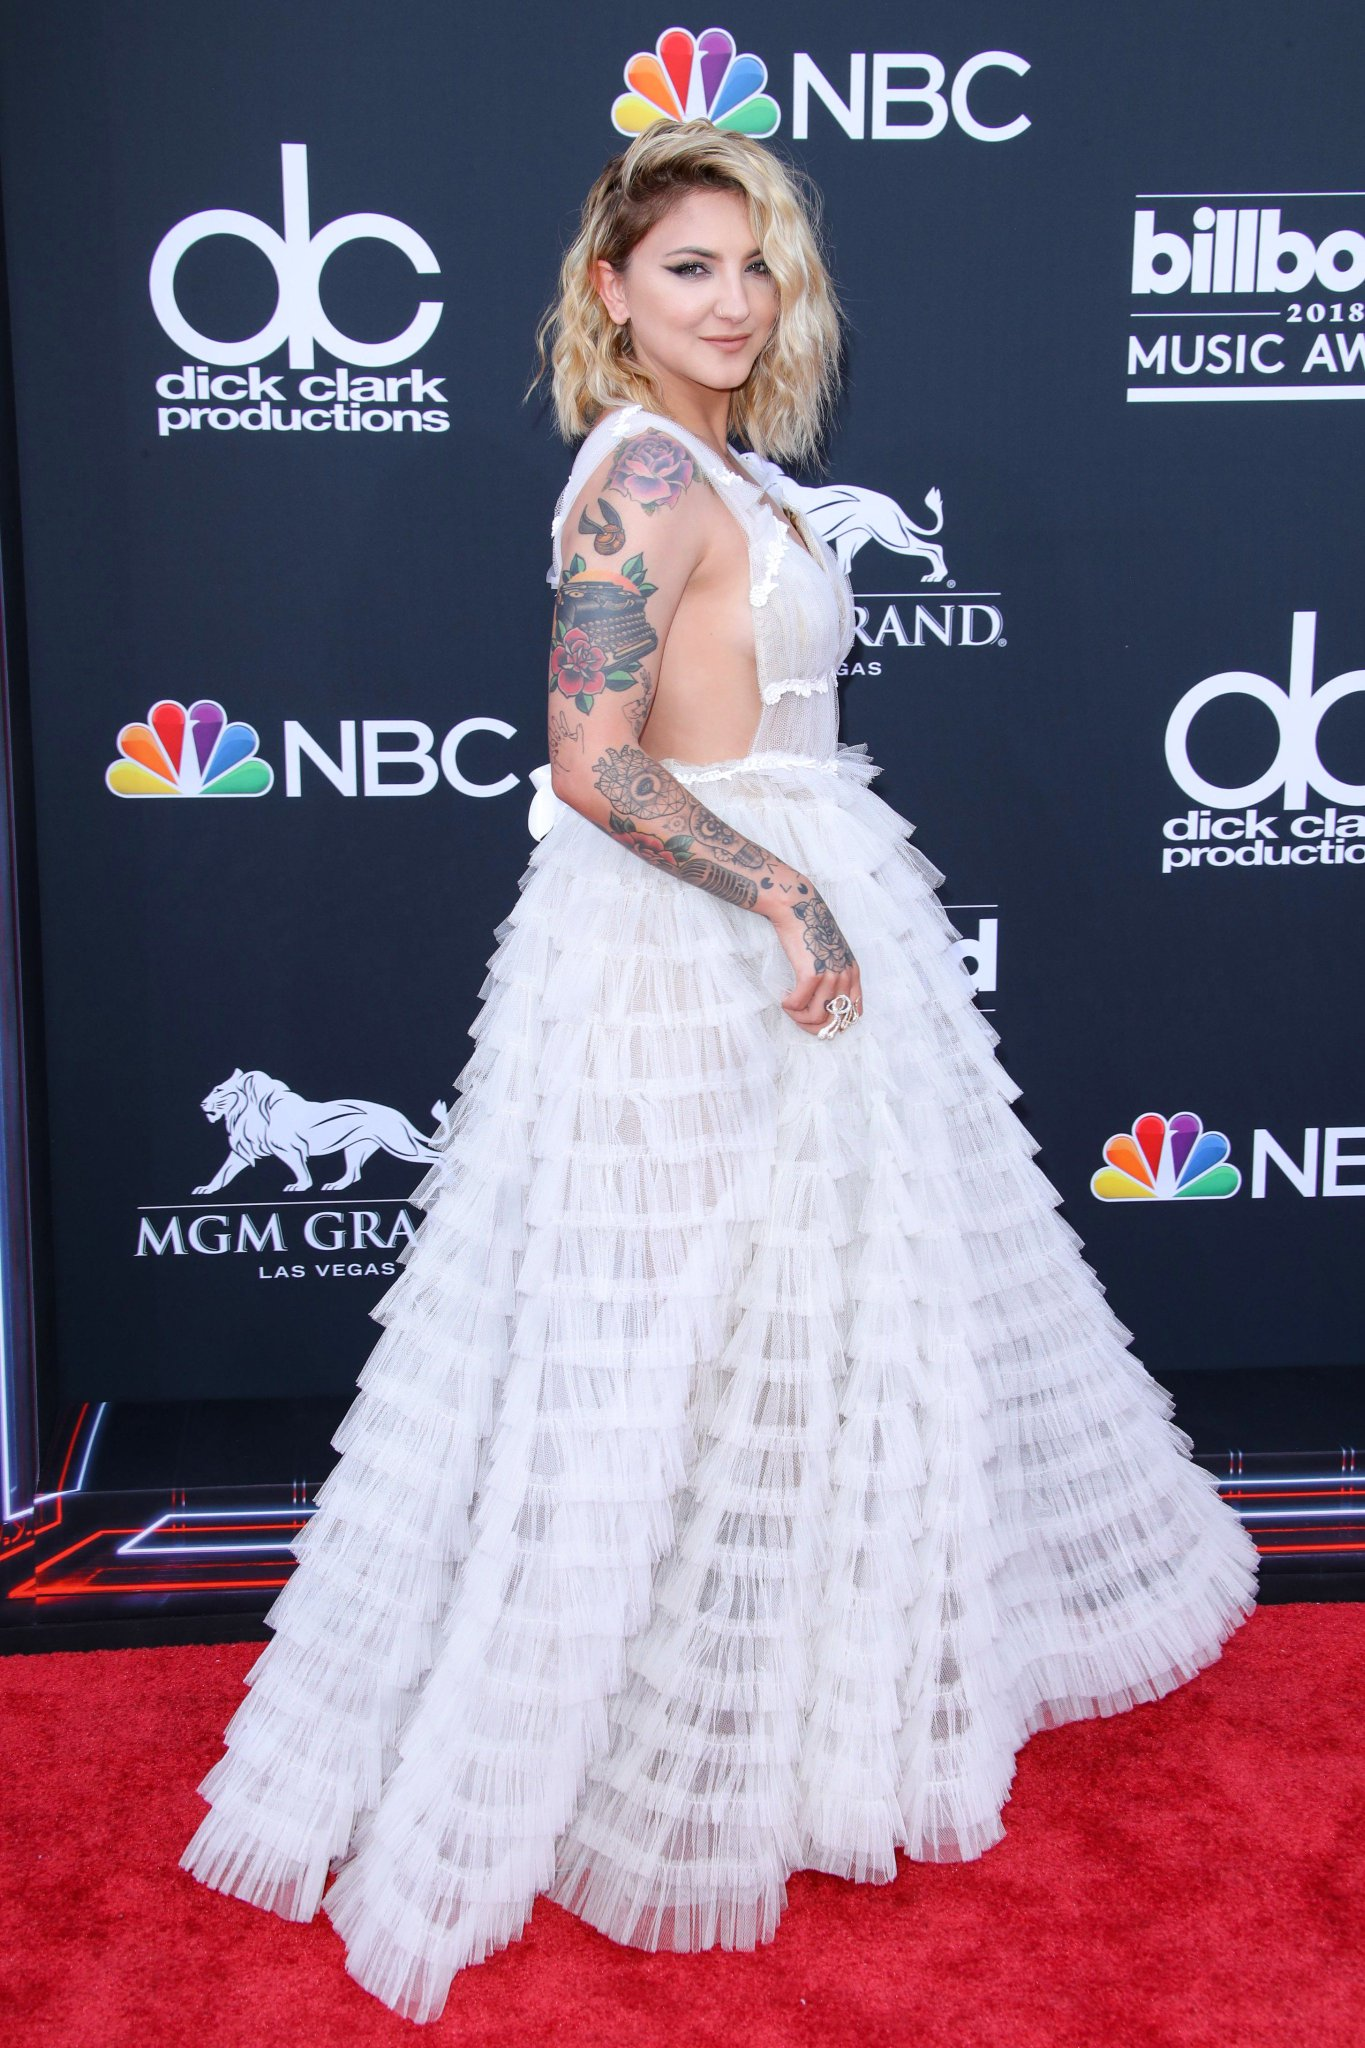 .@juliamichaels stuns on the #BBMAs red carpet. See more arrival photos: https://t.co/Rkv0D6HaMi https://t.co/tV0JjN1SPe